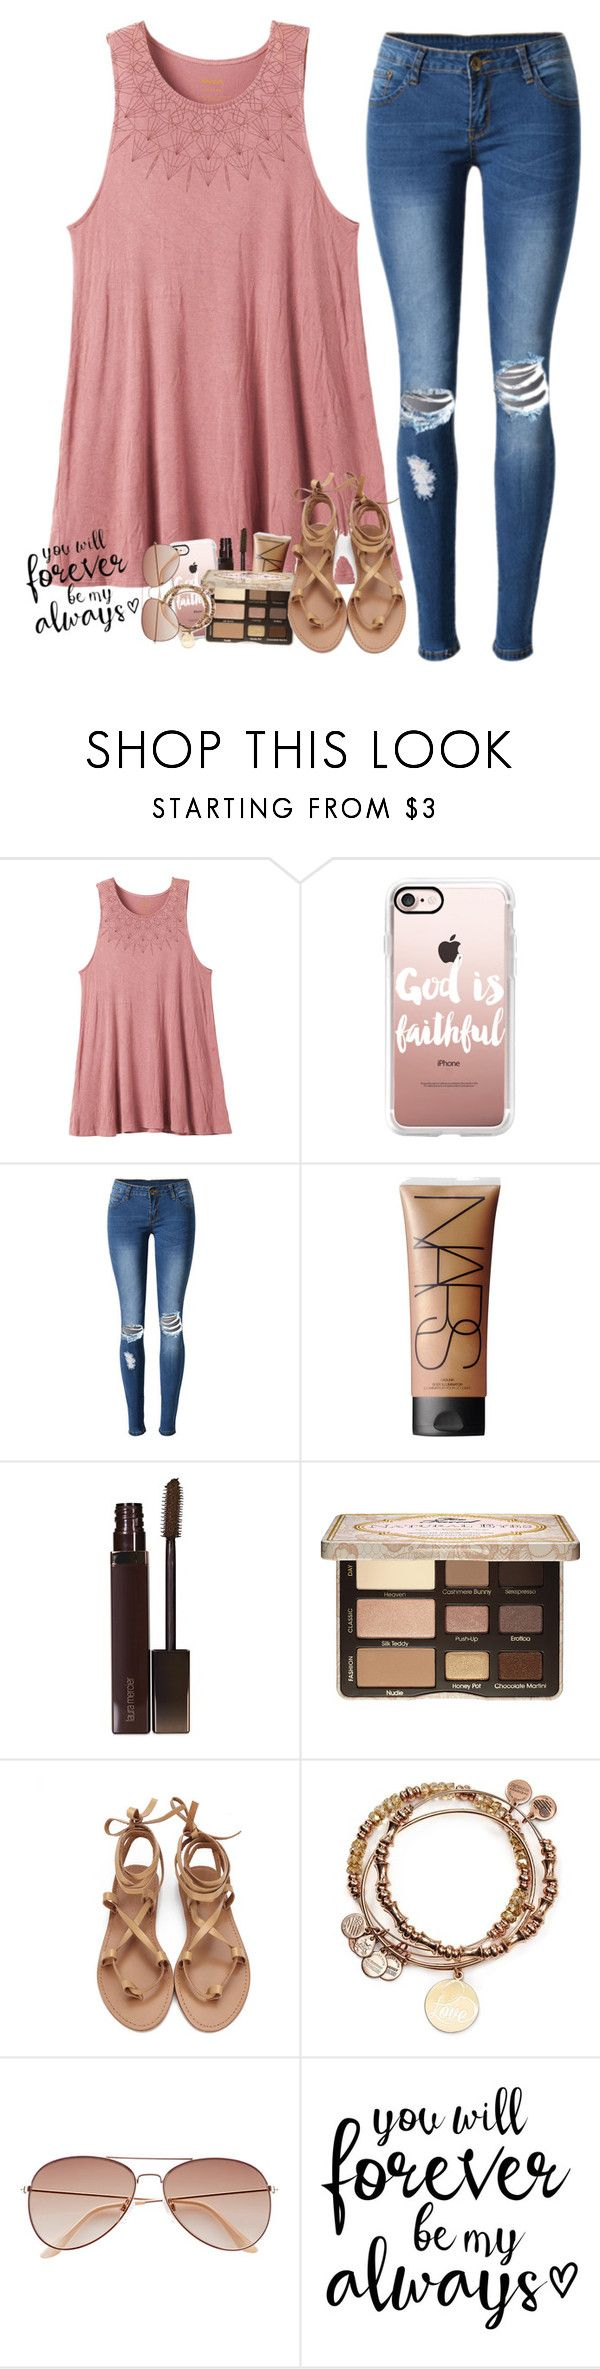 """""""It started on a weekend in May"""" by labures on Polyvore featuring RVCA, Casetify, WithChic, NARS Cosmetics, Laura Mercier, Too Faced Cosmetics, Alex and Ani and H&M"""